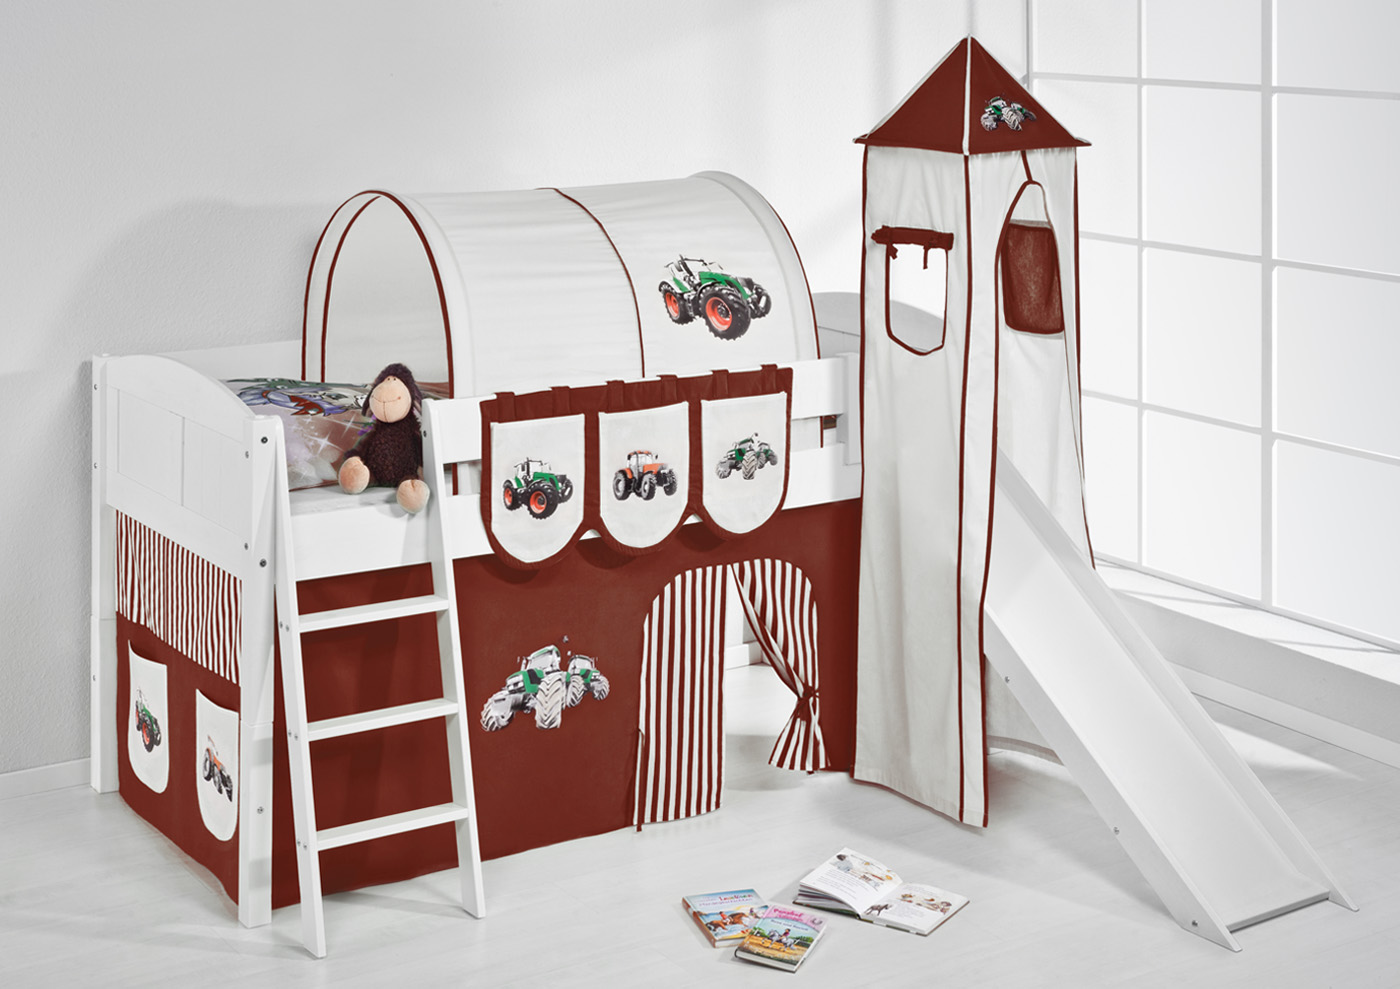 spielbett hochbett kinderbett kinder bett mit turm und. Black Bedroom Furniture Sets. Home Design Ideas